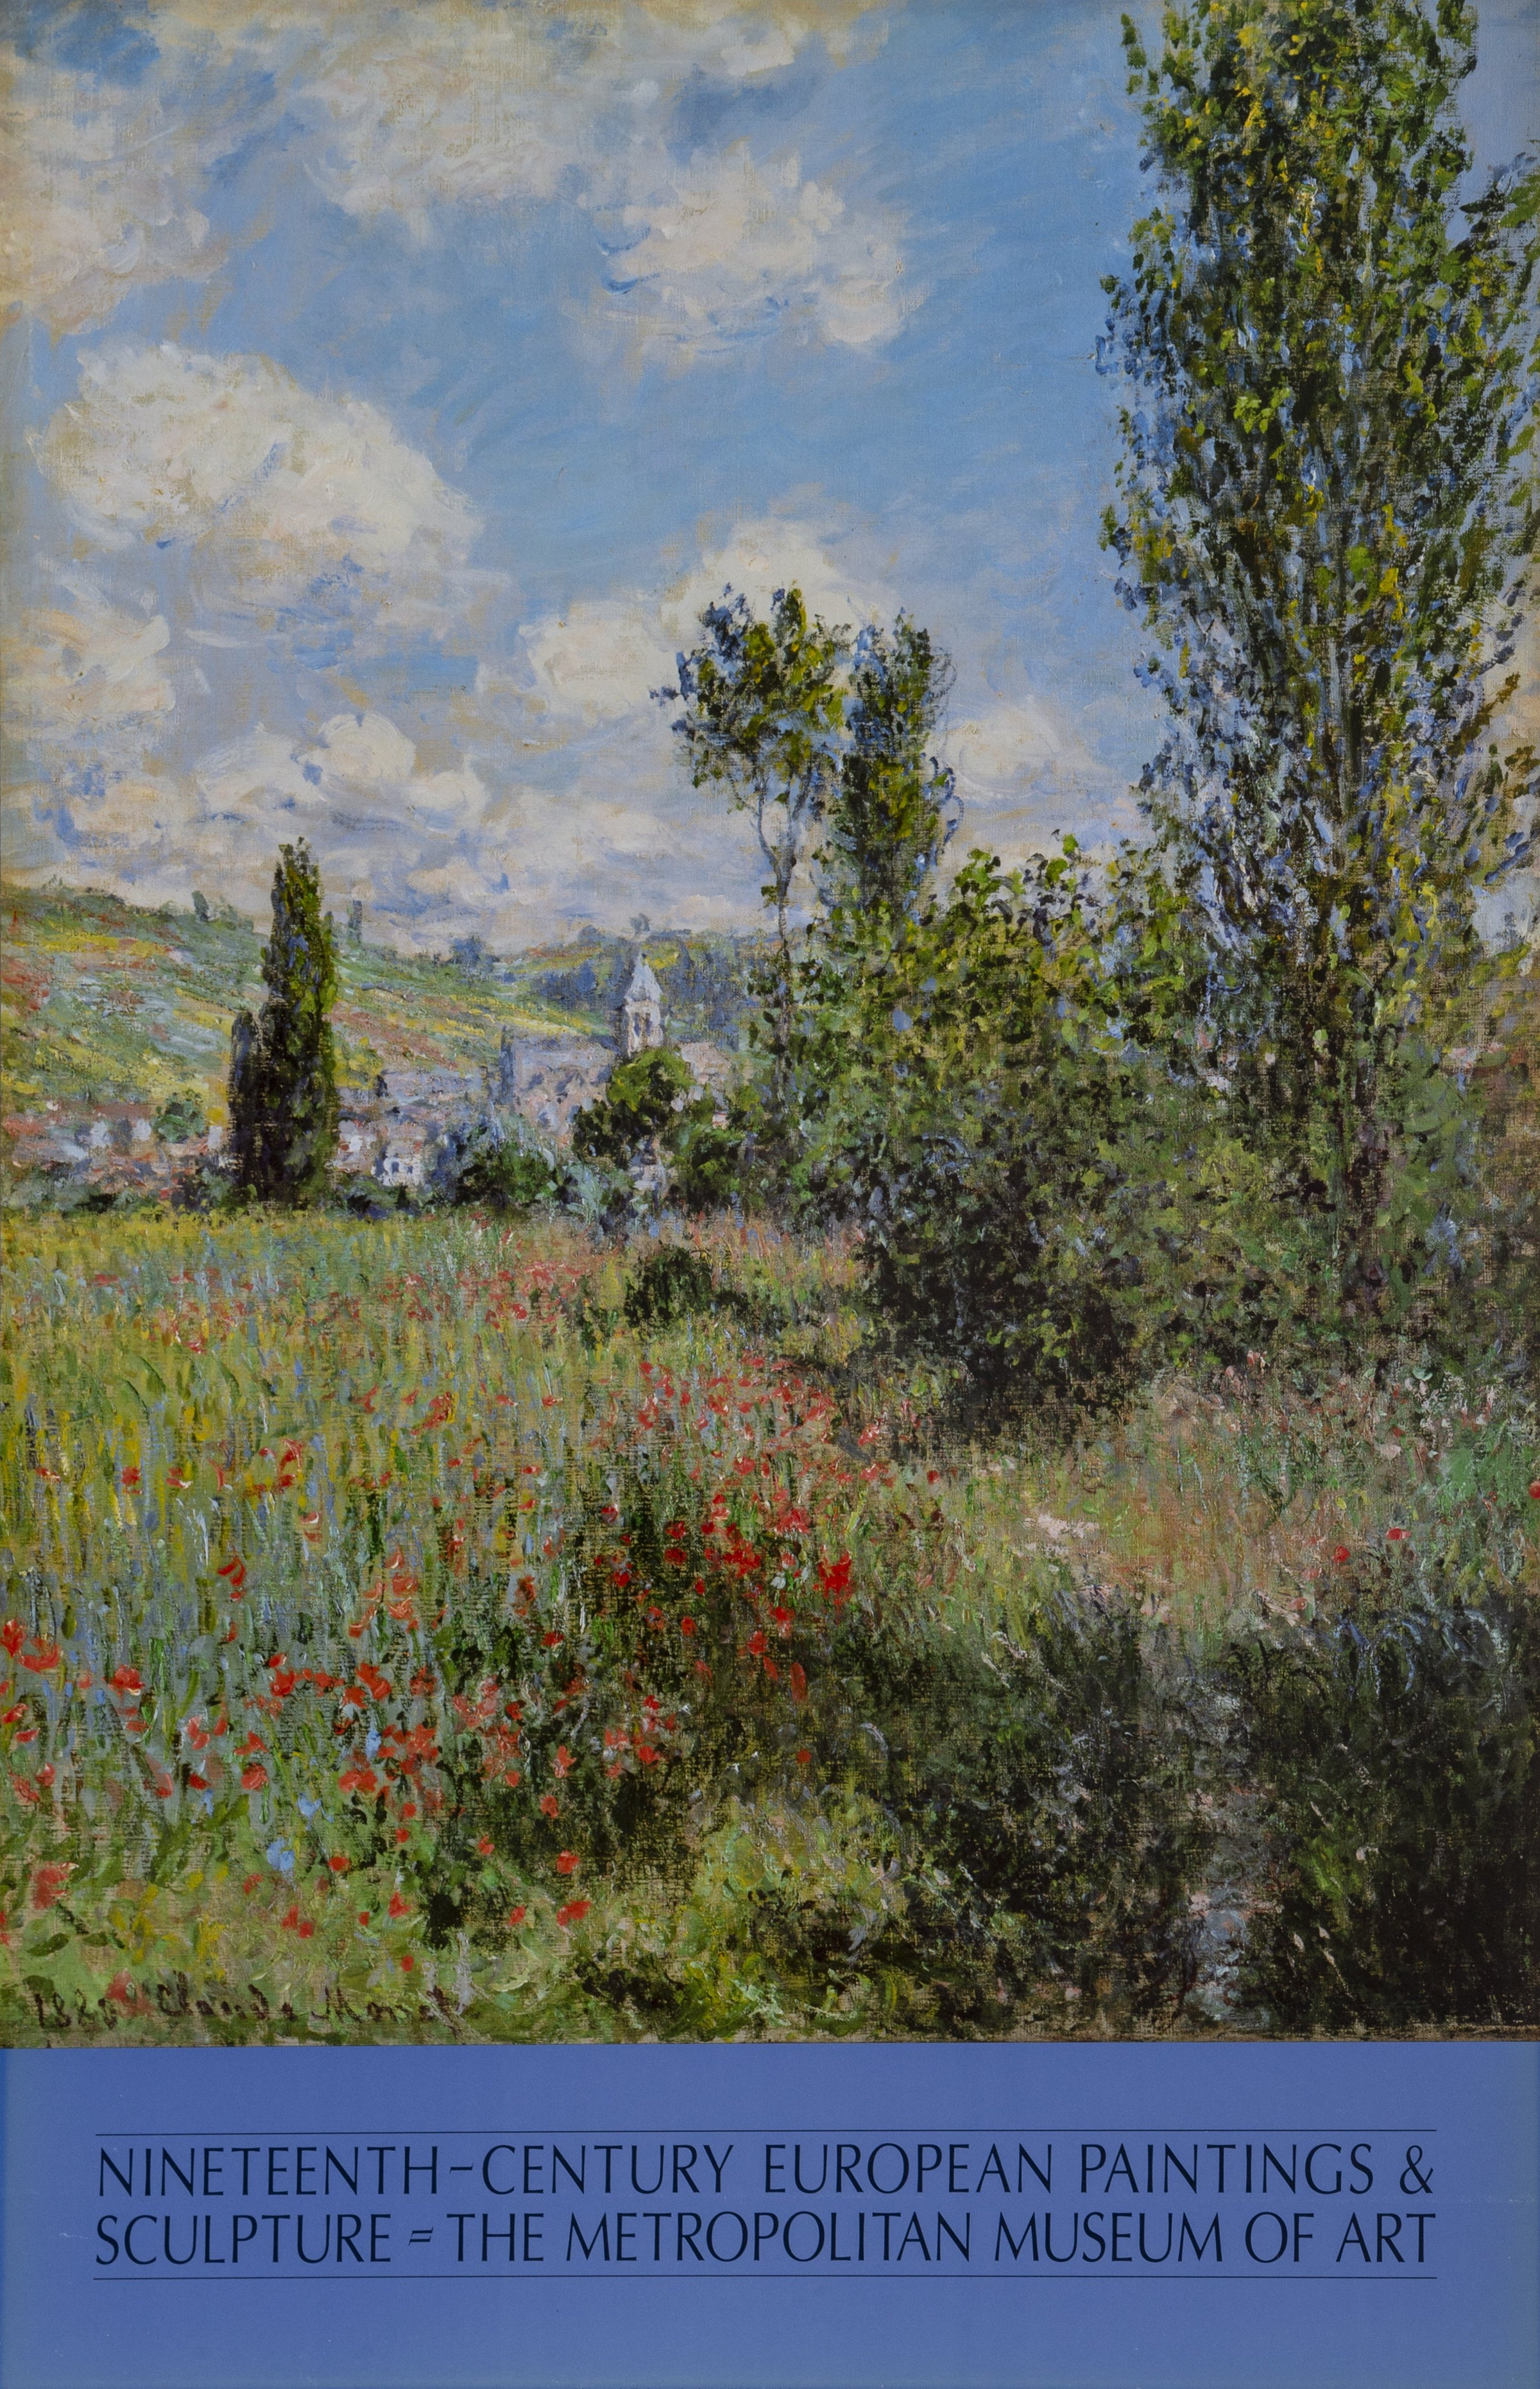 Claude Monet, 19th Century European Paintings at the Met Poster - RoGallery